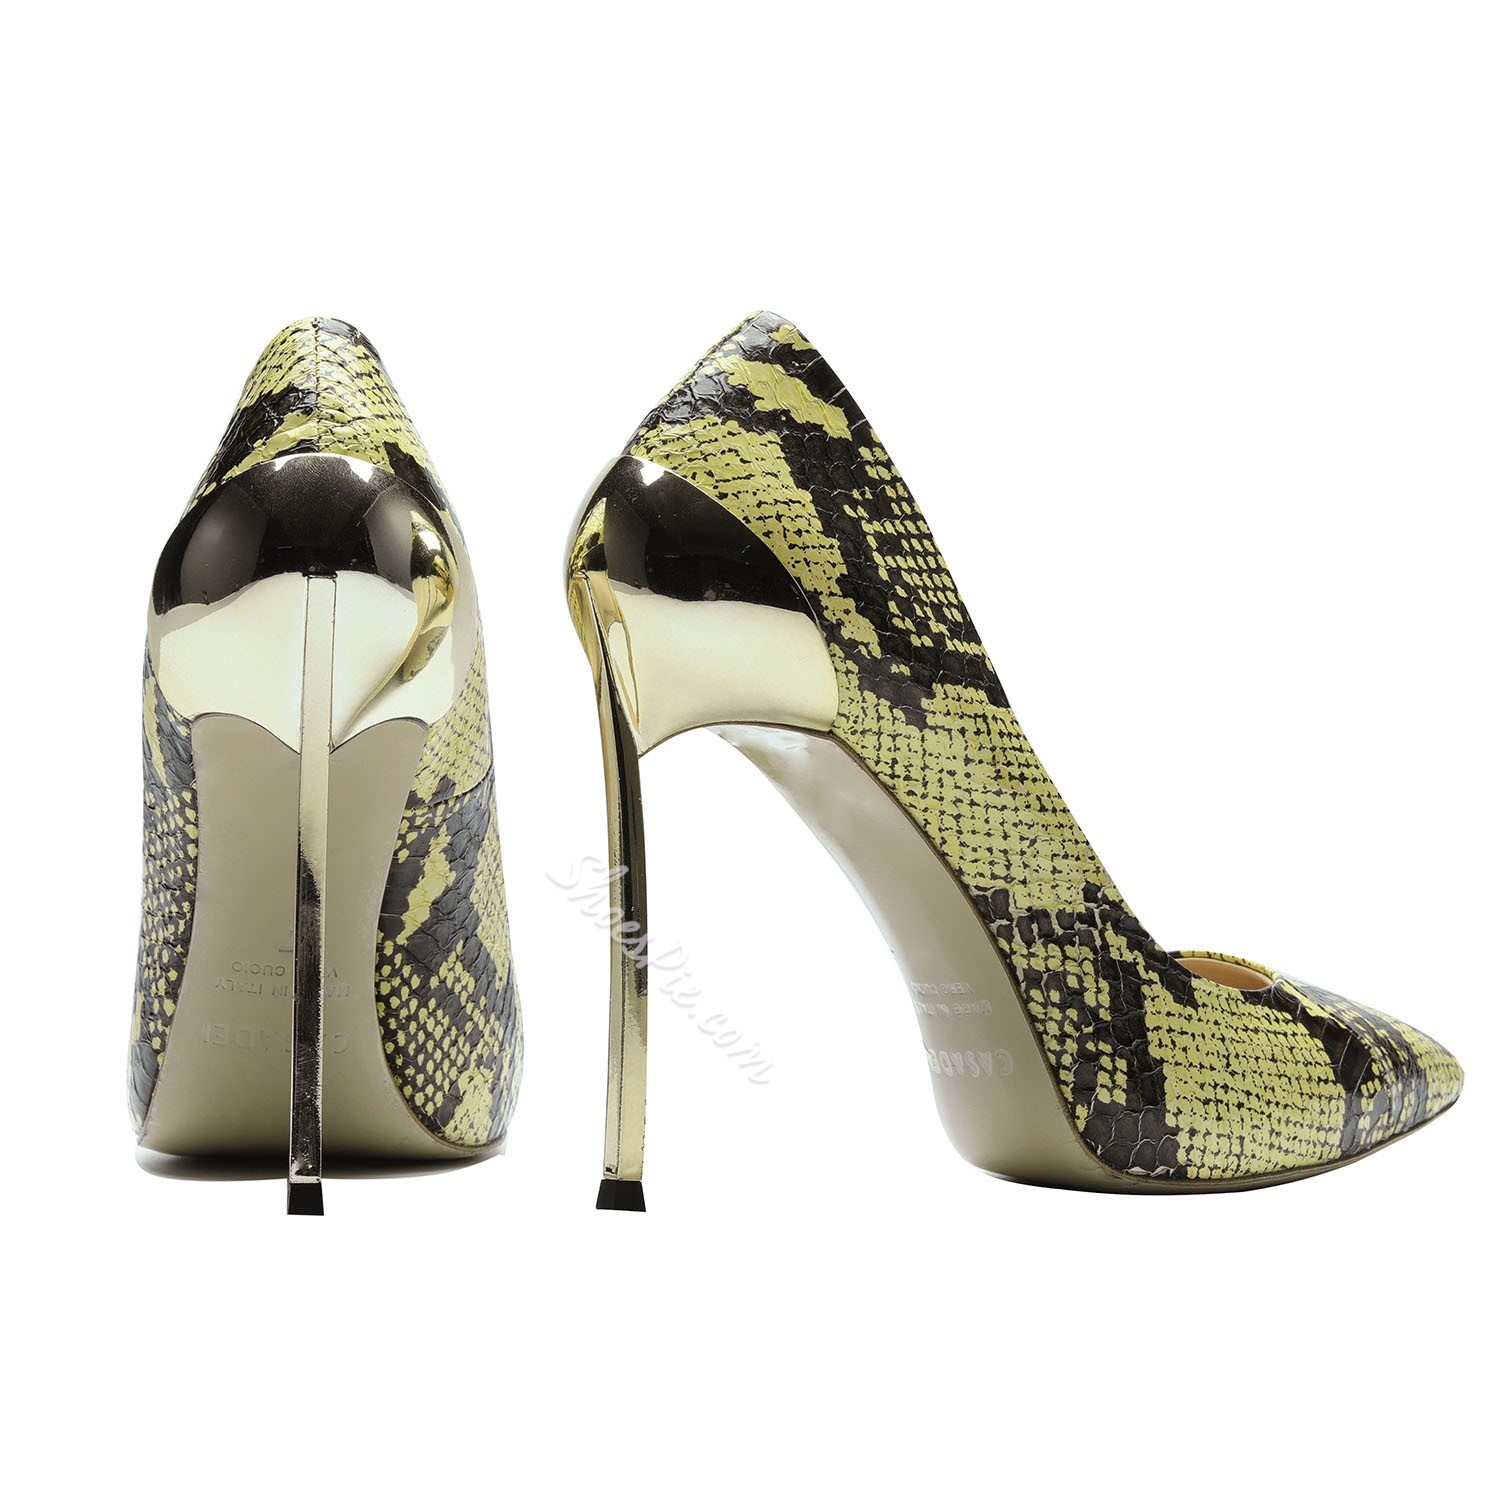 Serpentine Pointed Toe Stiletto Heels